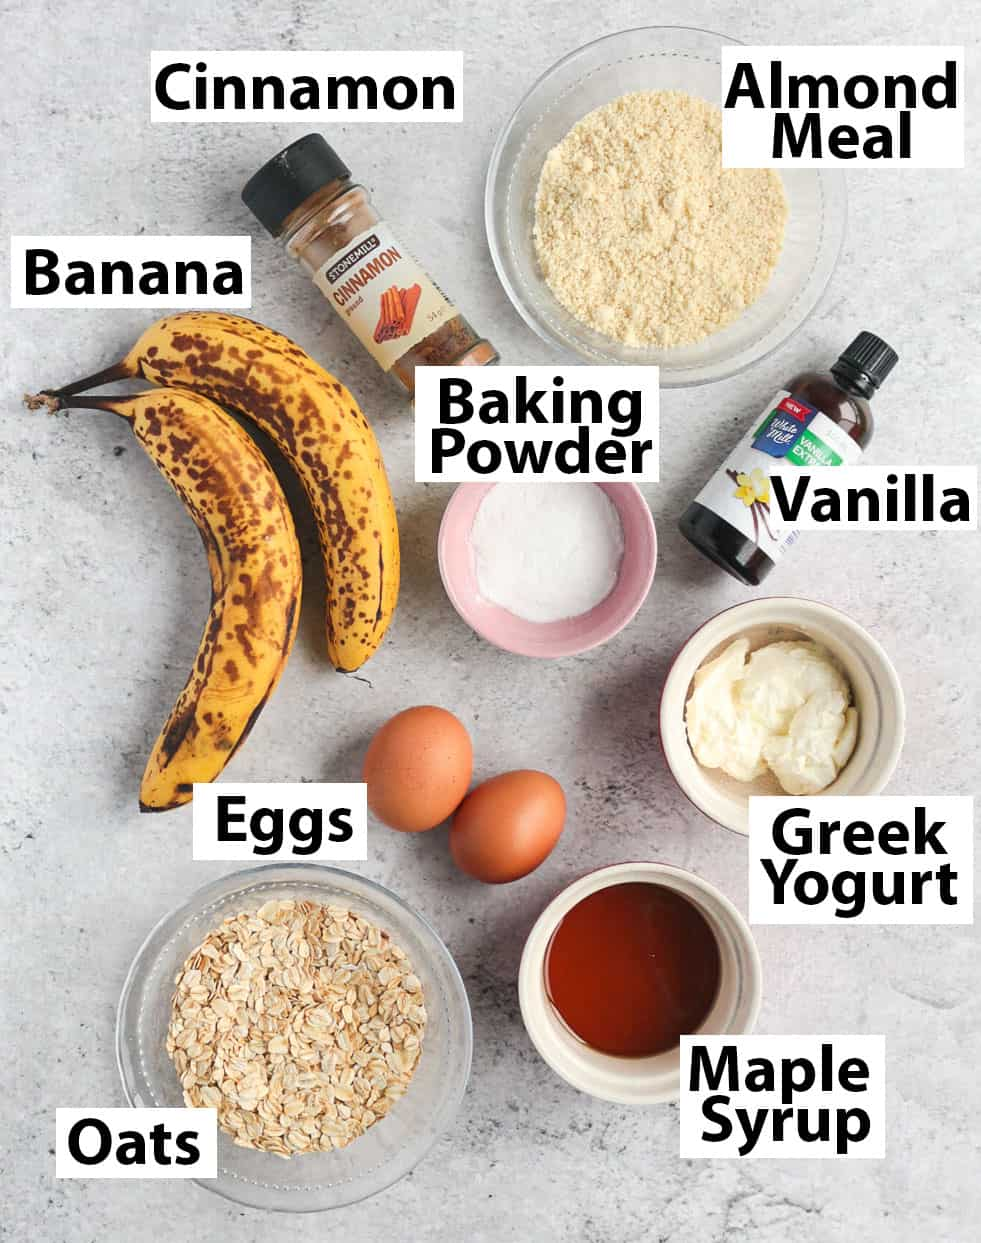 Muffins Ingredients on a grey surface.